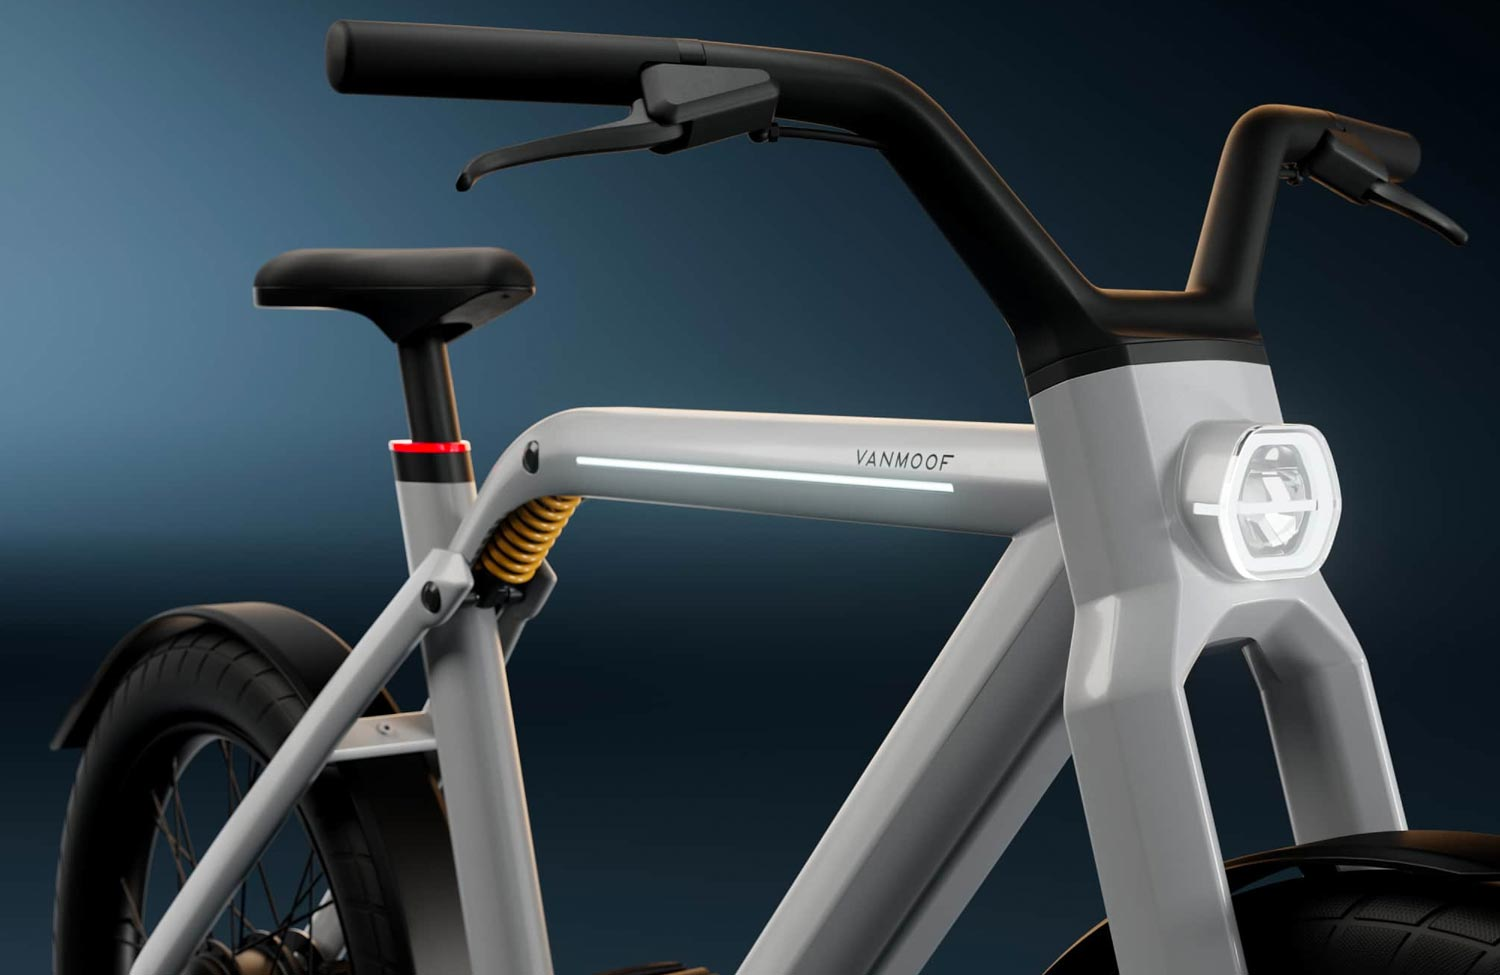 Now official: the new VanMoof V is a high speed e-bike with two motors